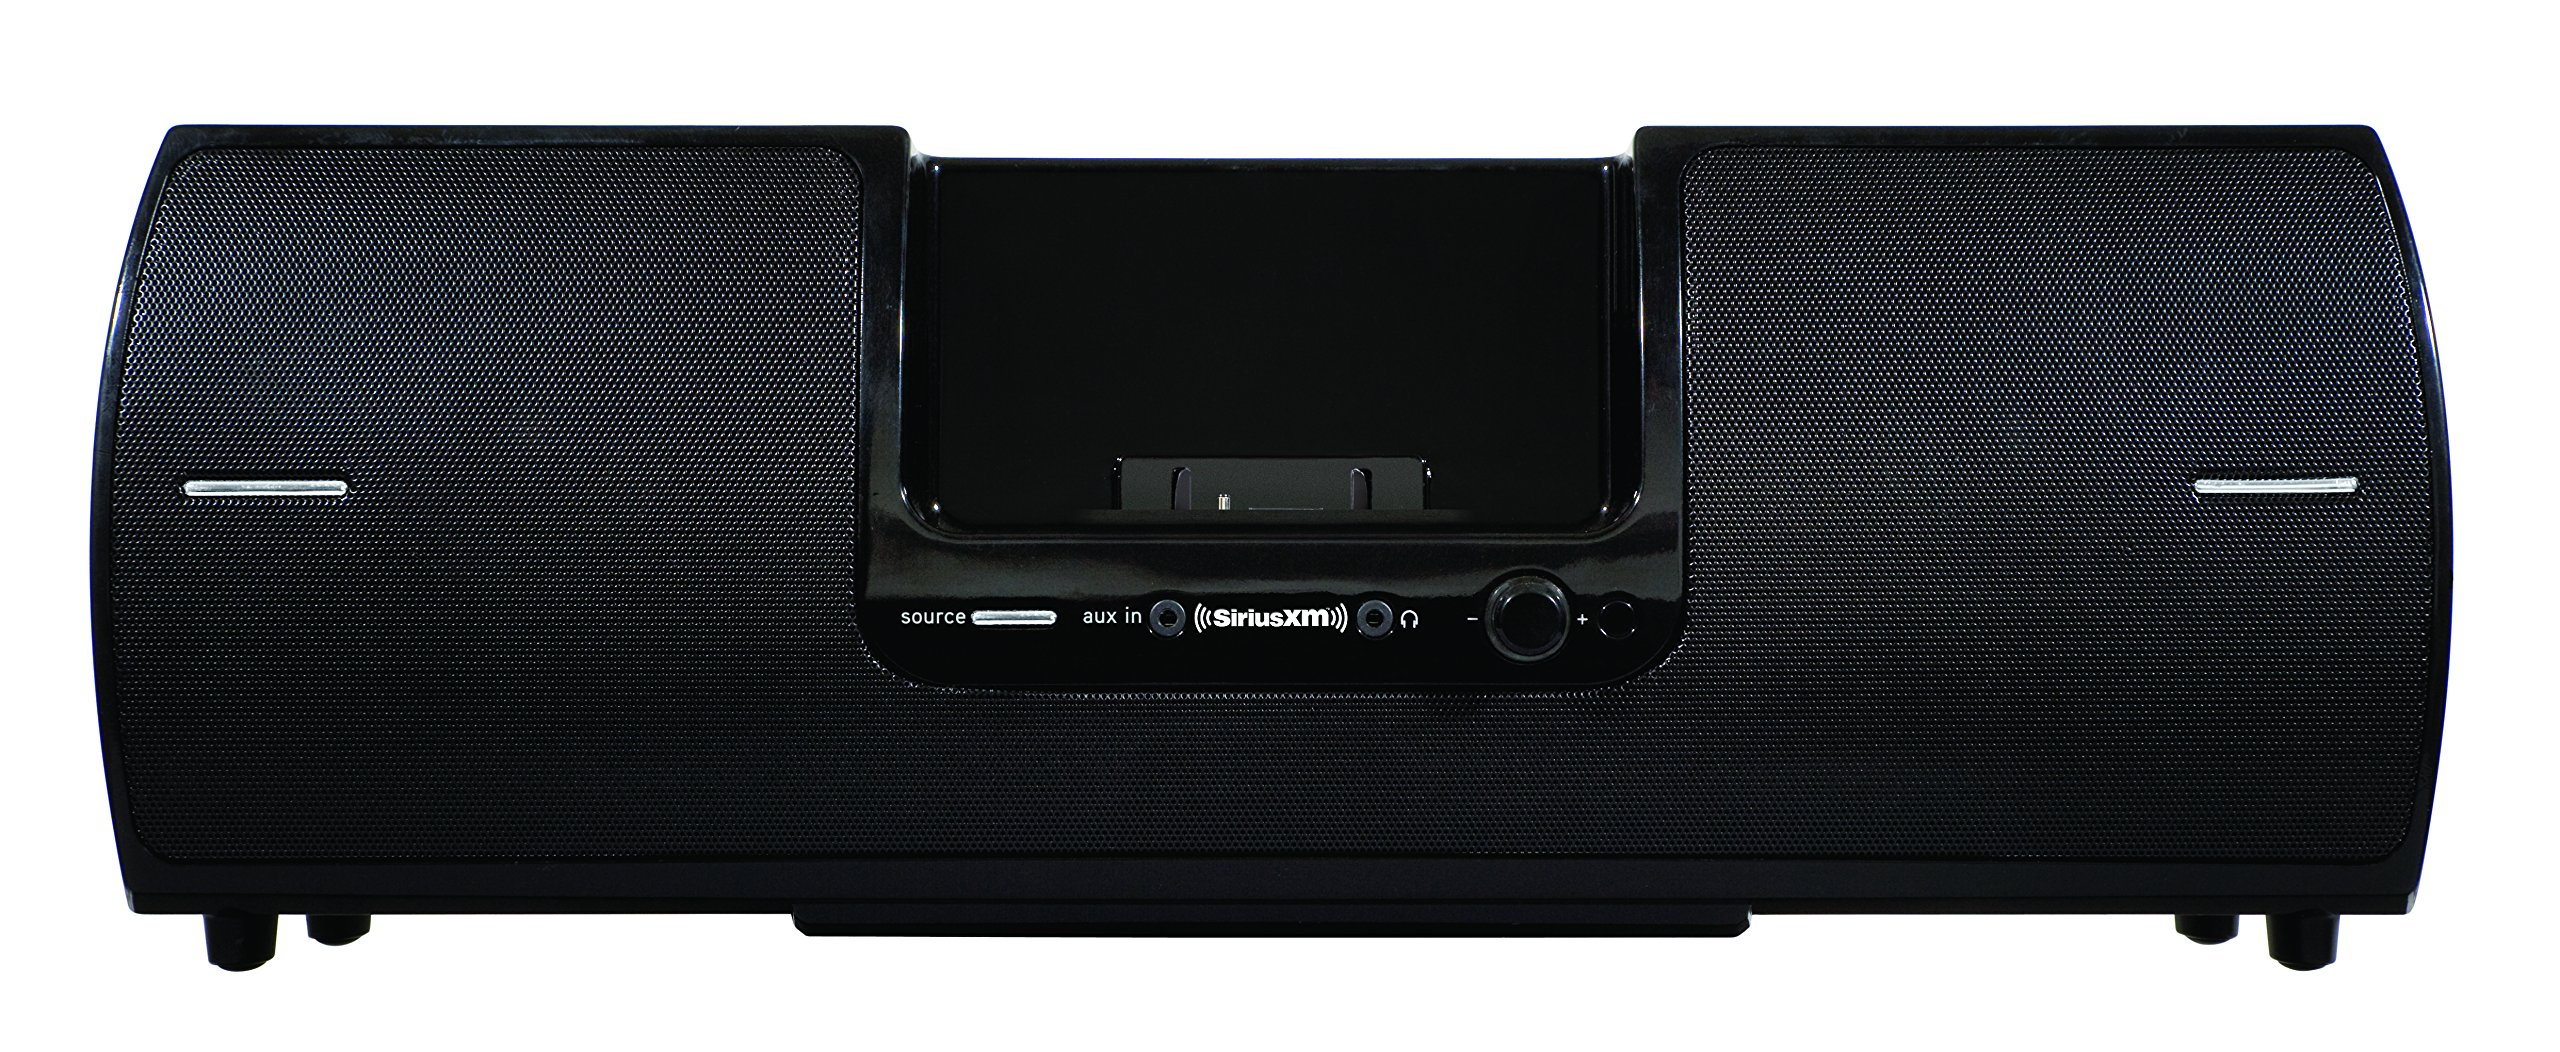 SiriusXM SXSD2 Portable Speaker Dock Audio System for Dock and Play Radios (Black) by SiriusXM